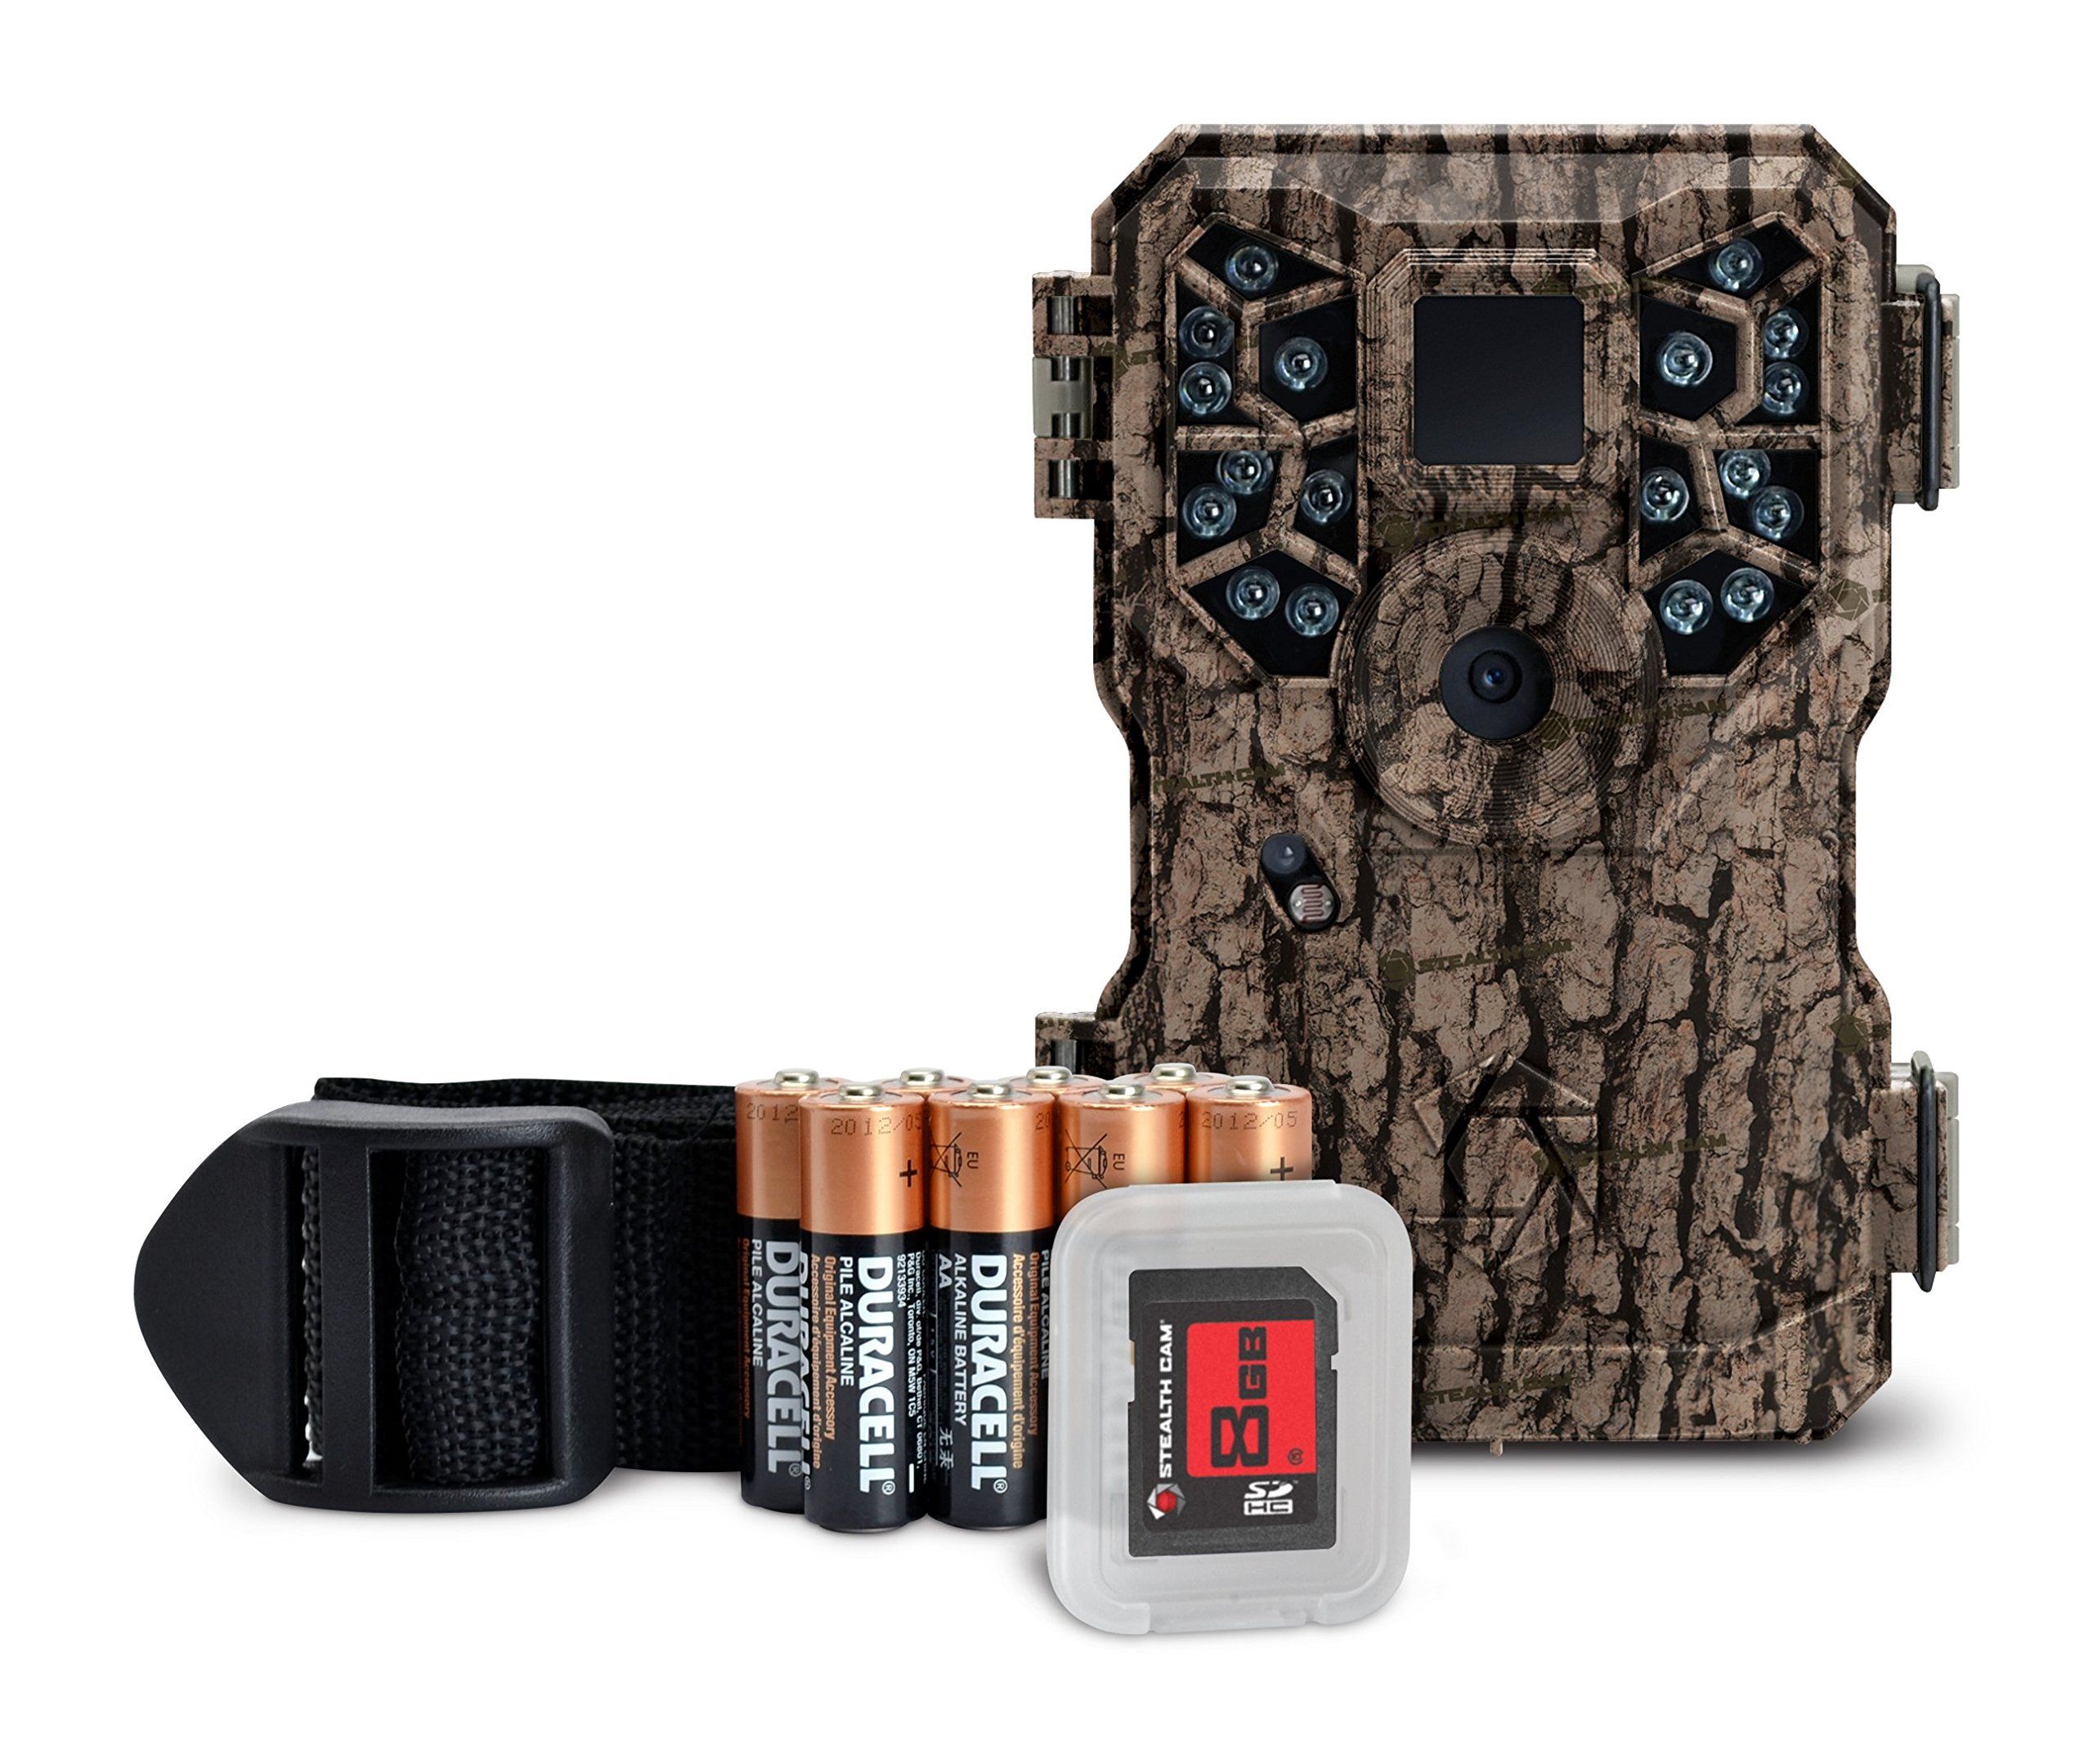 GSM Outdoors STC-PX18CMO Stealth Cam, 8 Megapixel/Video Recording 15 seconds/18 IR Emitters/Camo/Combo Bat and SD, Digital Scouting Camera